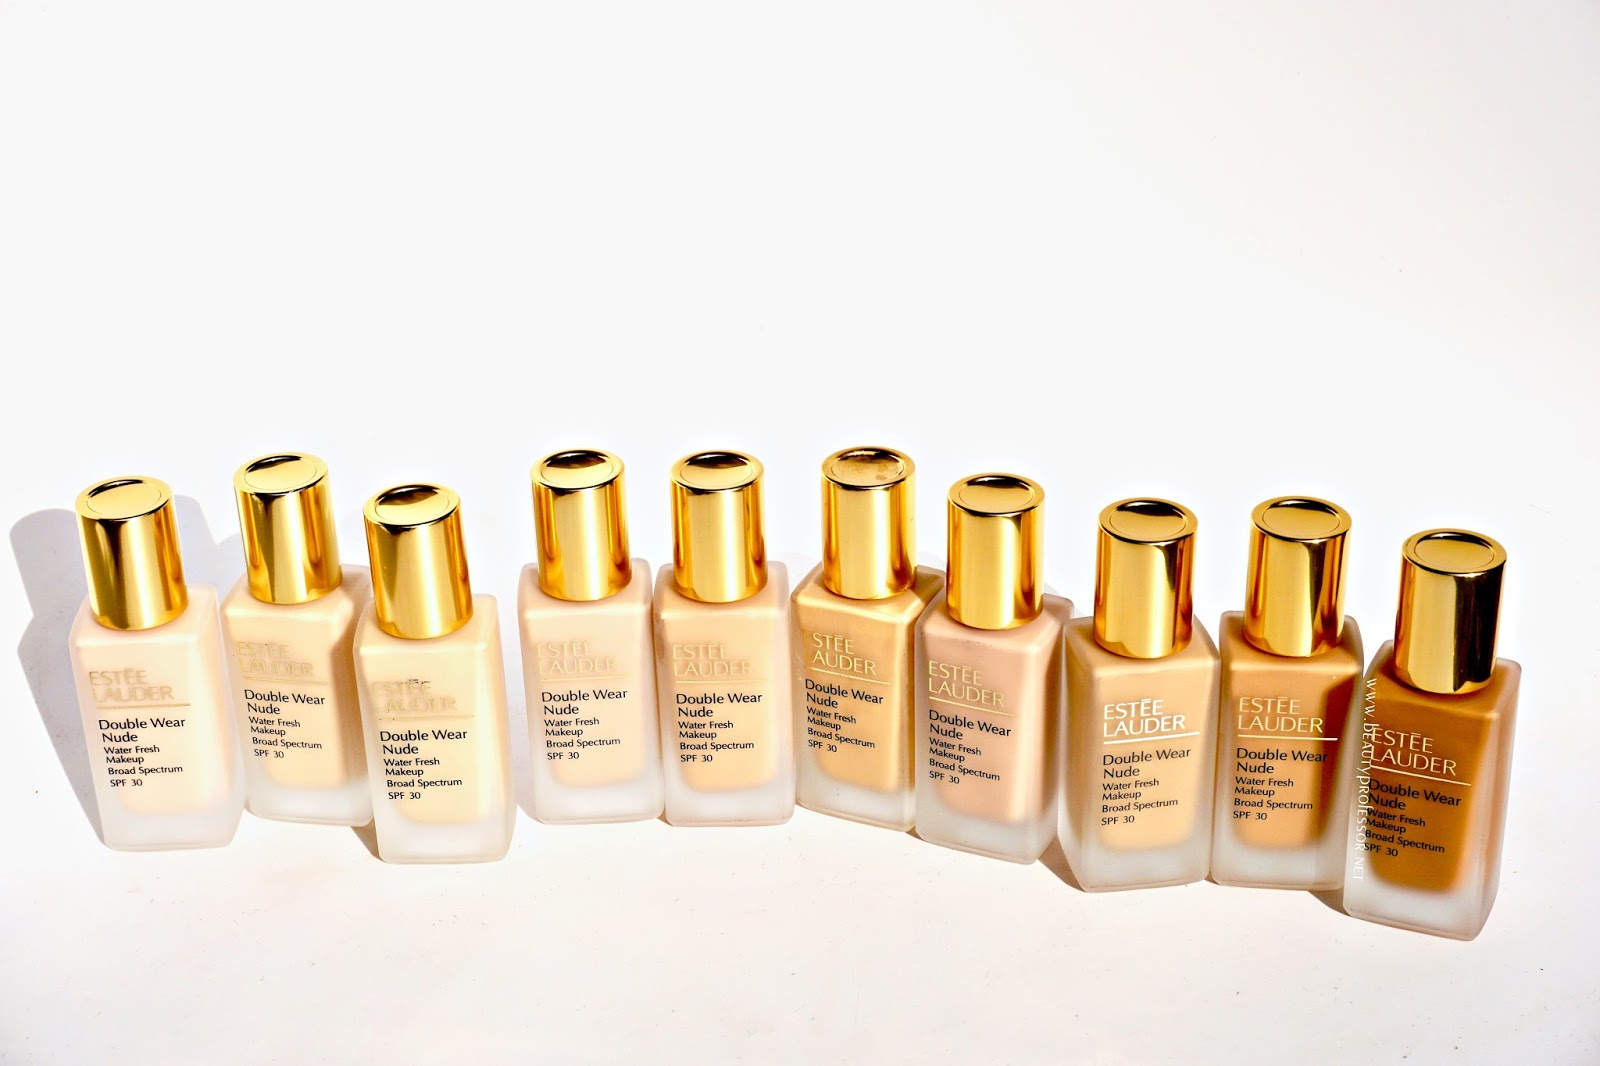 Estee Lauder Double Wear Nude Water Fresh Foundation swatches